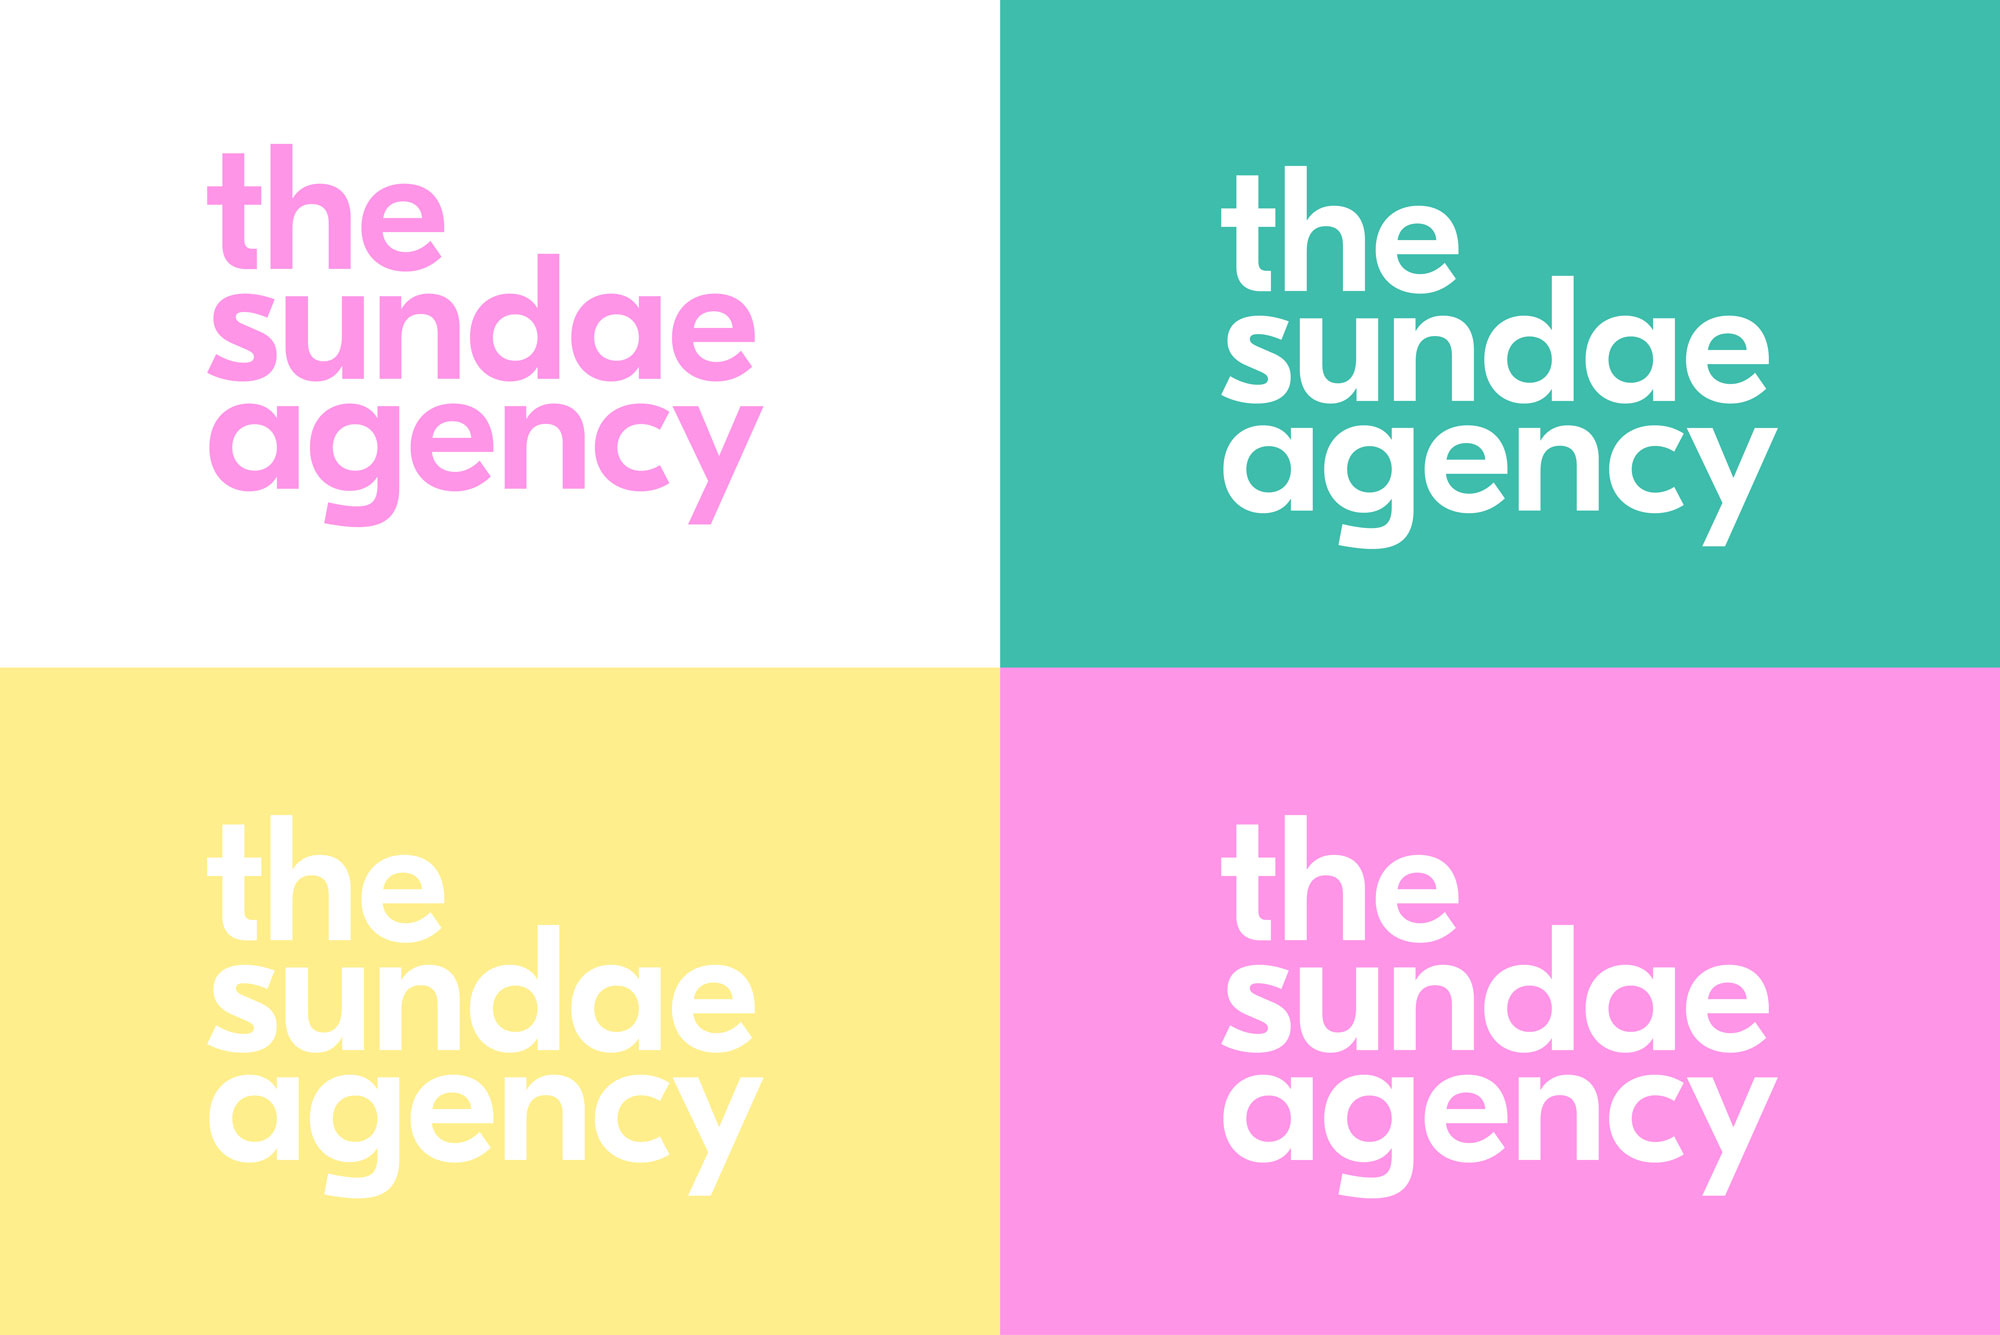 The-Sundae-Agency-We-Rebranded-And-This-Is-Why